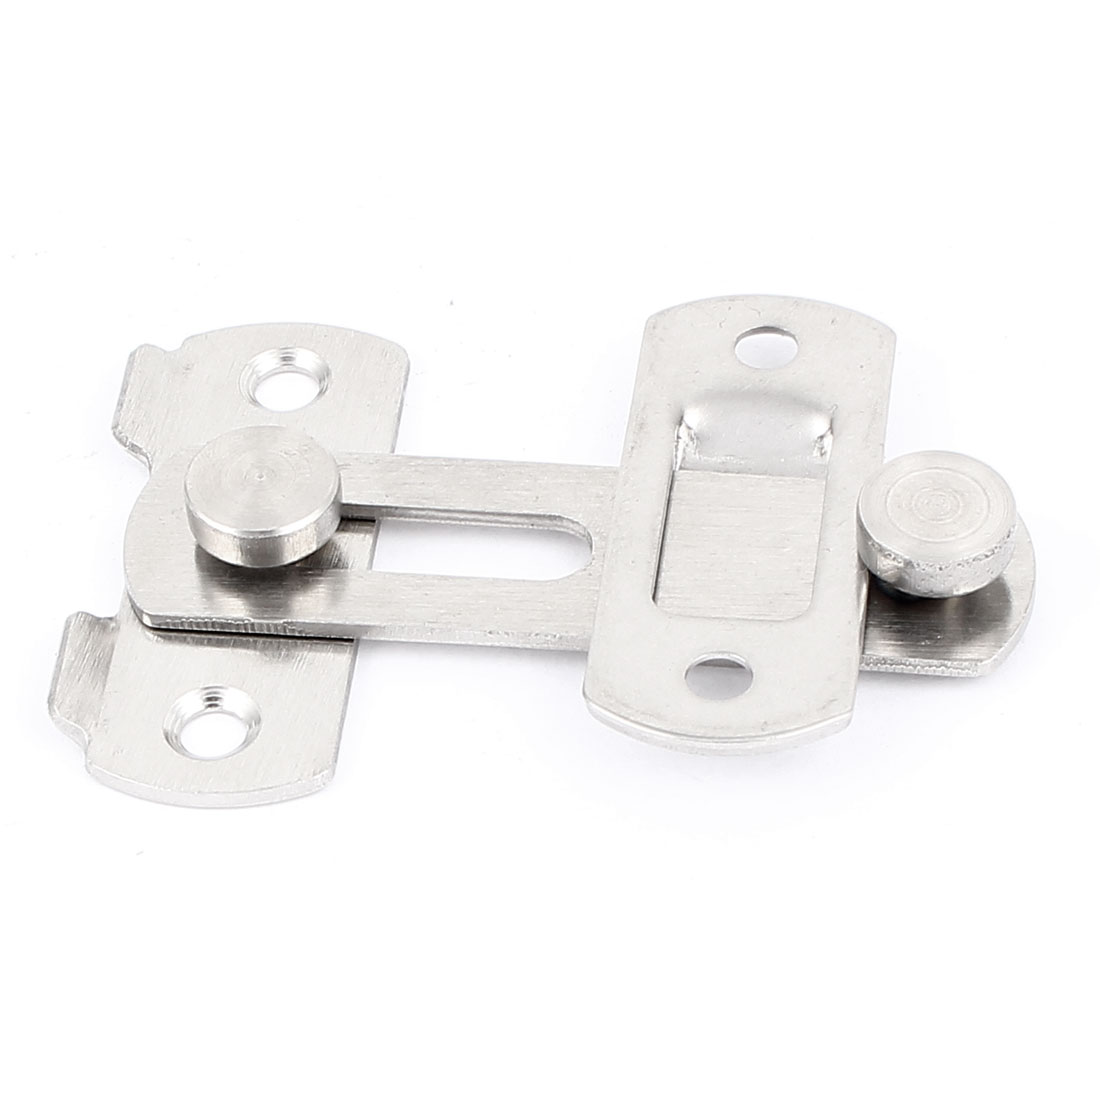 Cabinet Door Closet Metal Hasp Catch Latch Silver Tone 8.5cm Long w Screws